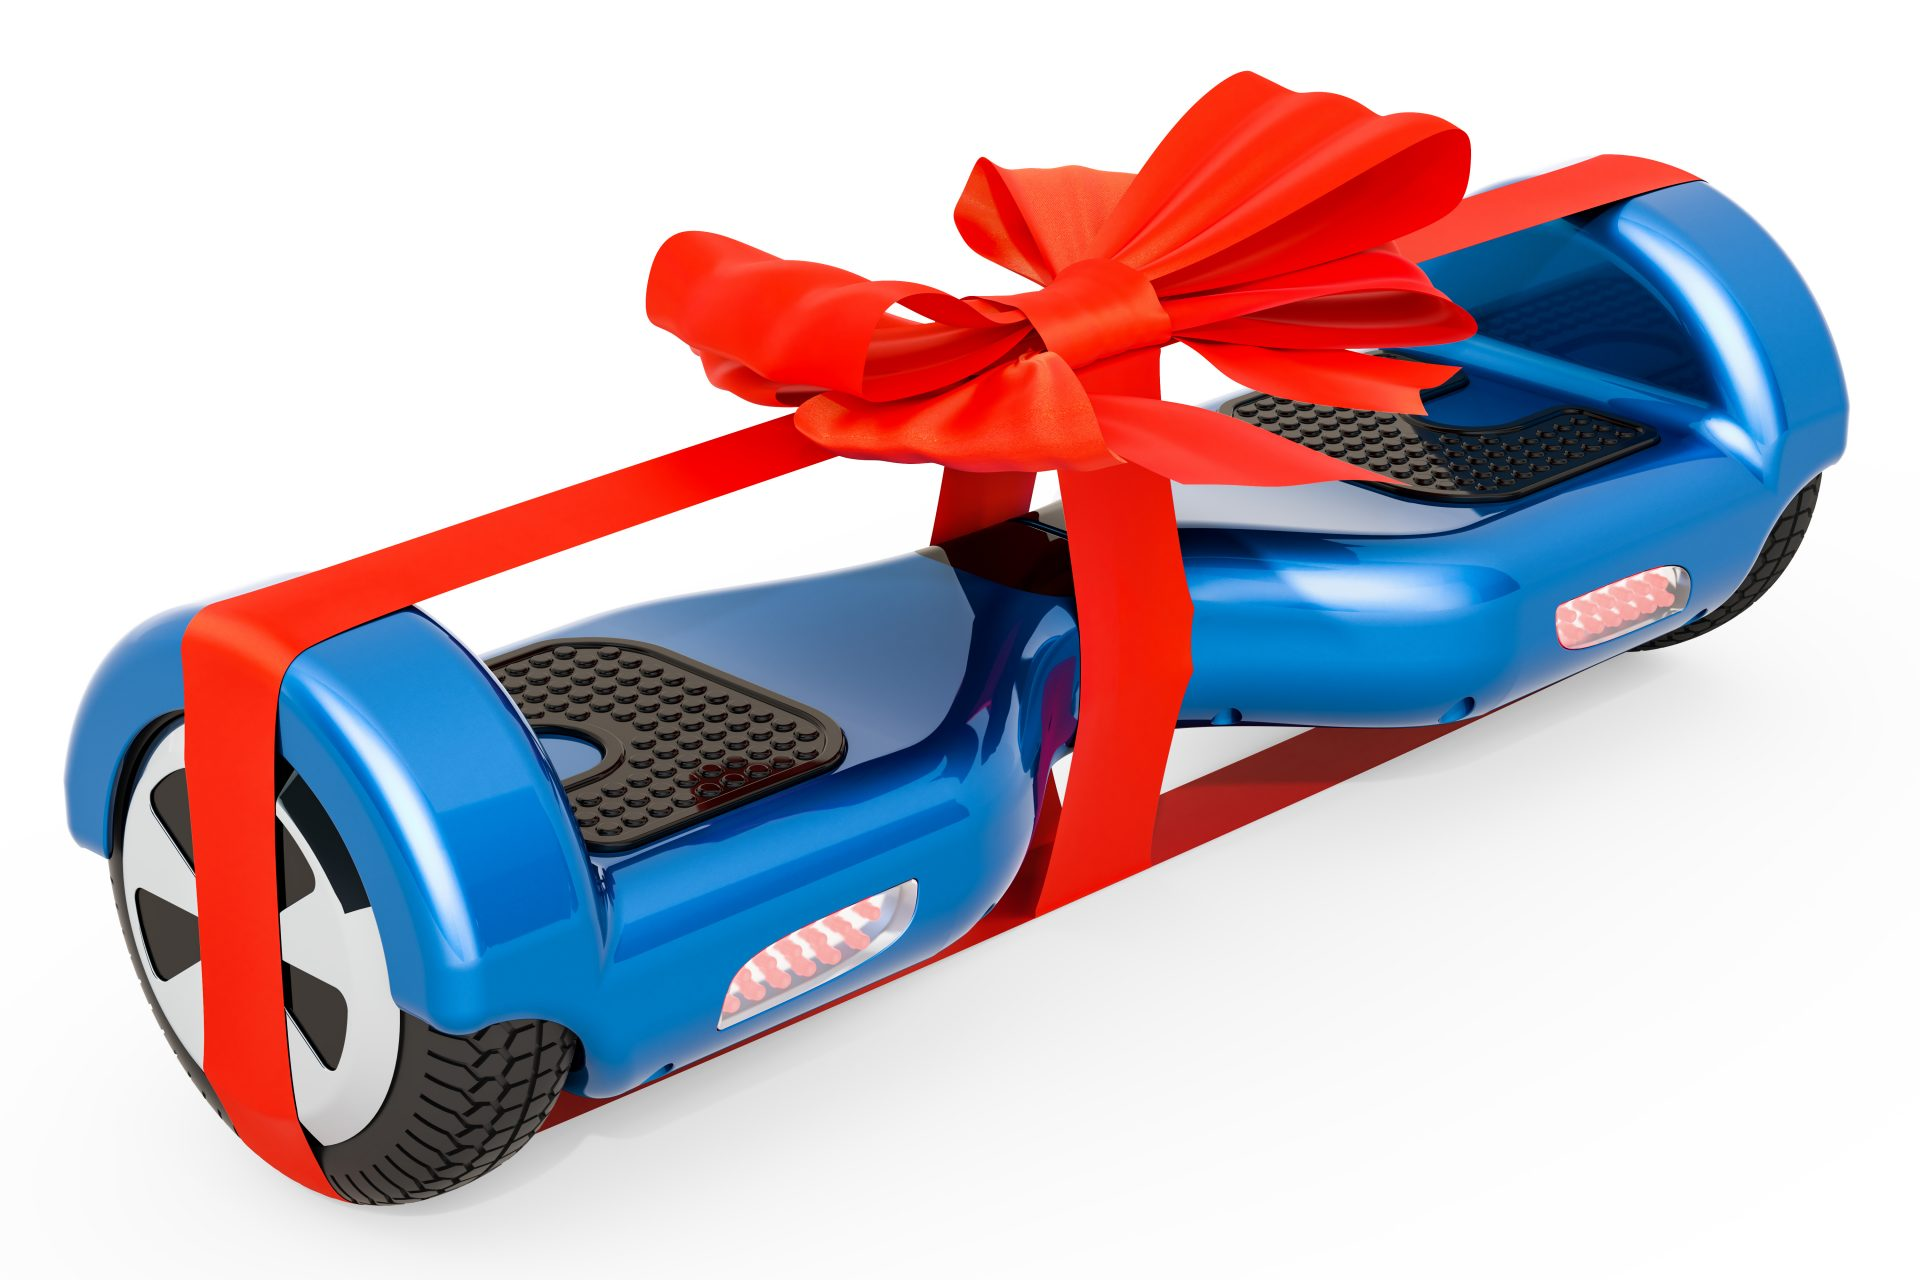 A hoverhoard wrapped with red ribbon, if injured from defective product meet with Michigan Product Liability Lawyers.